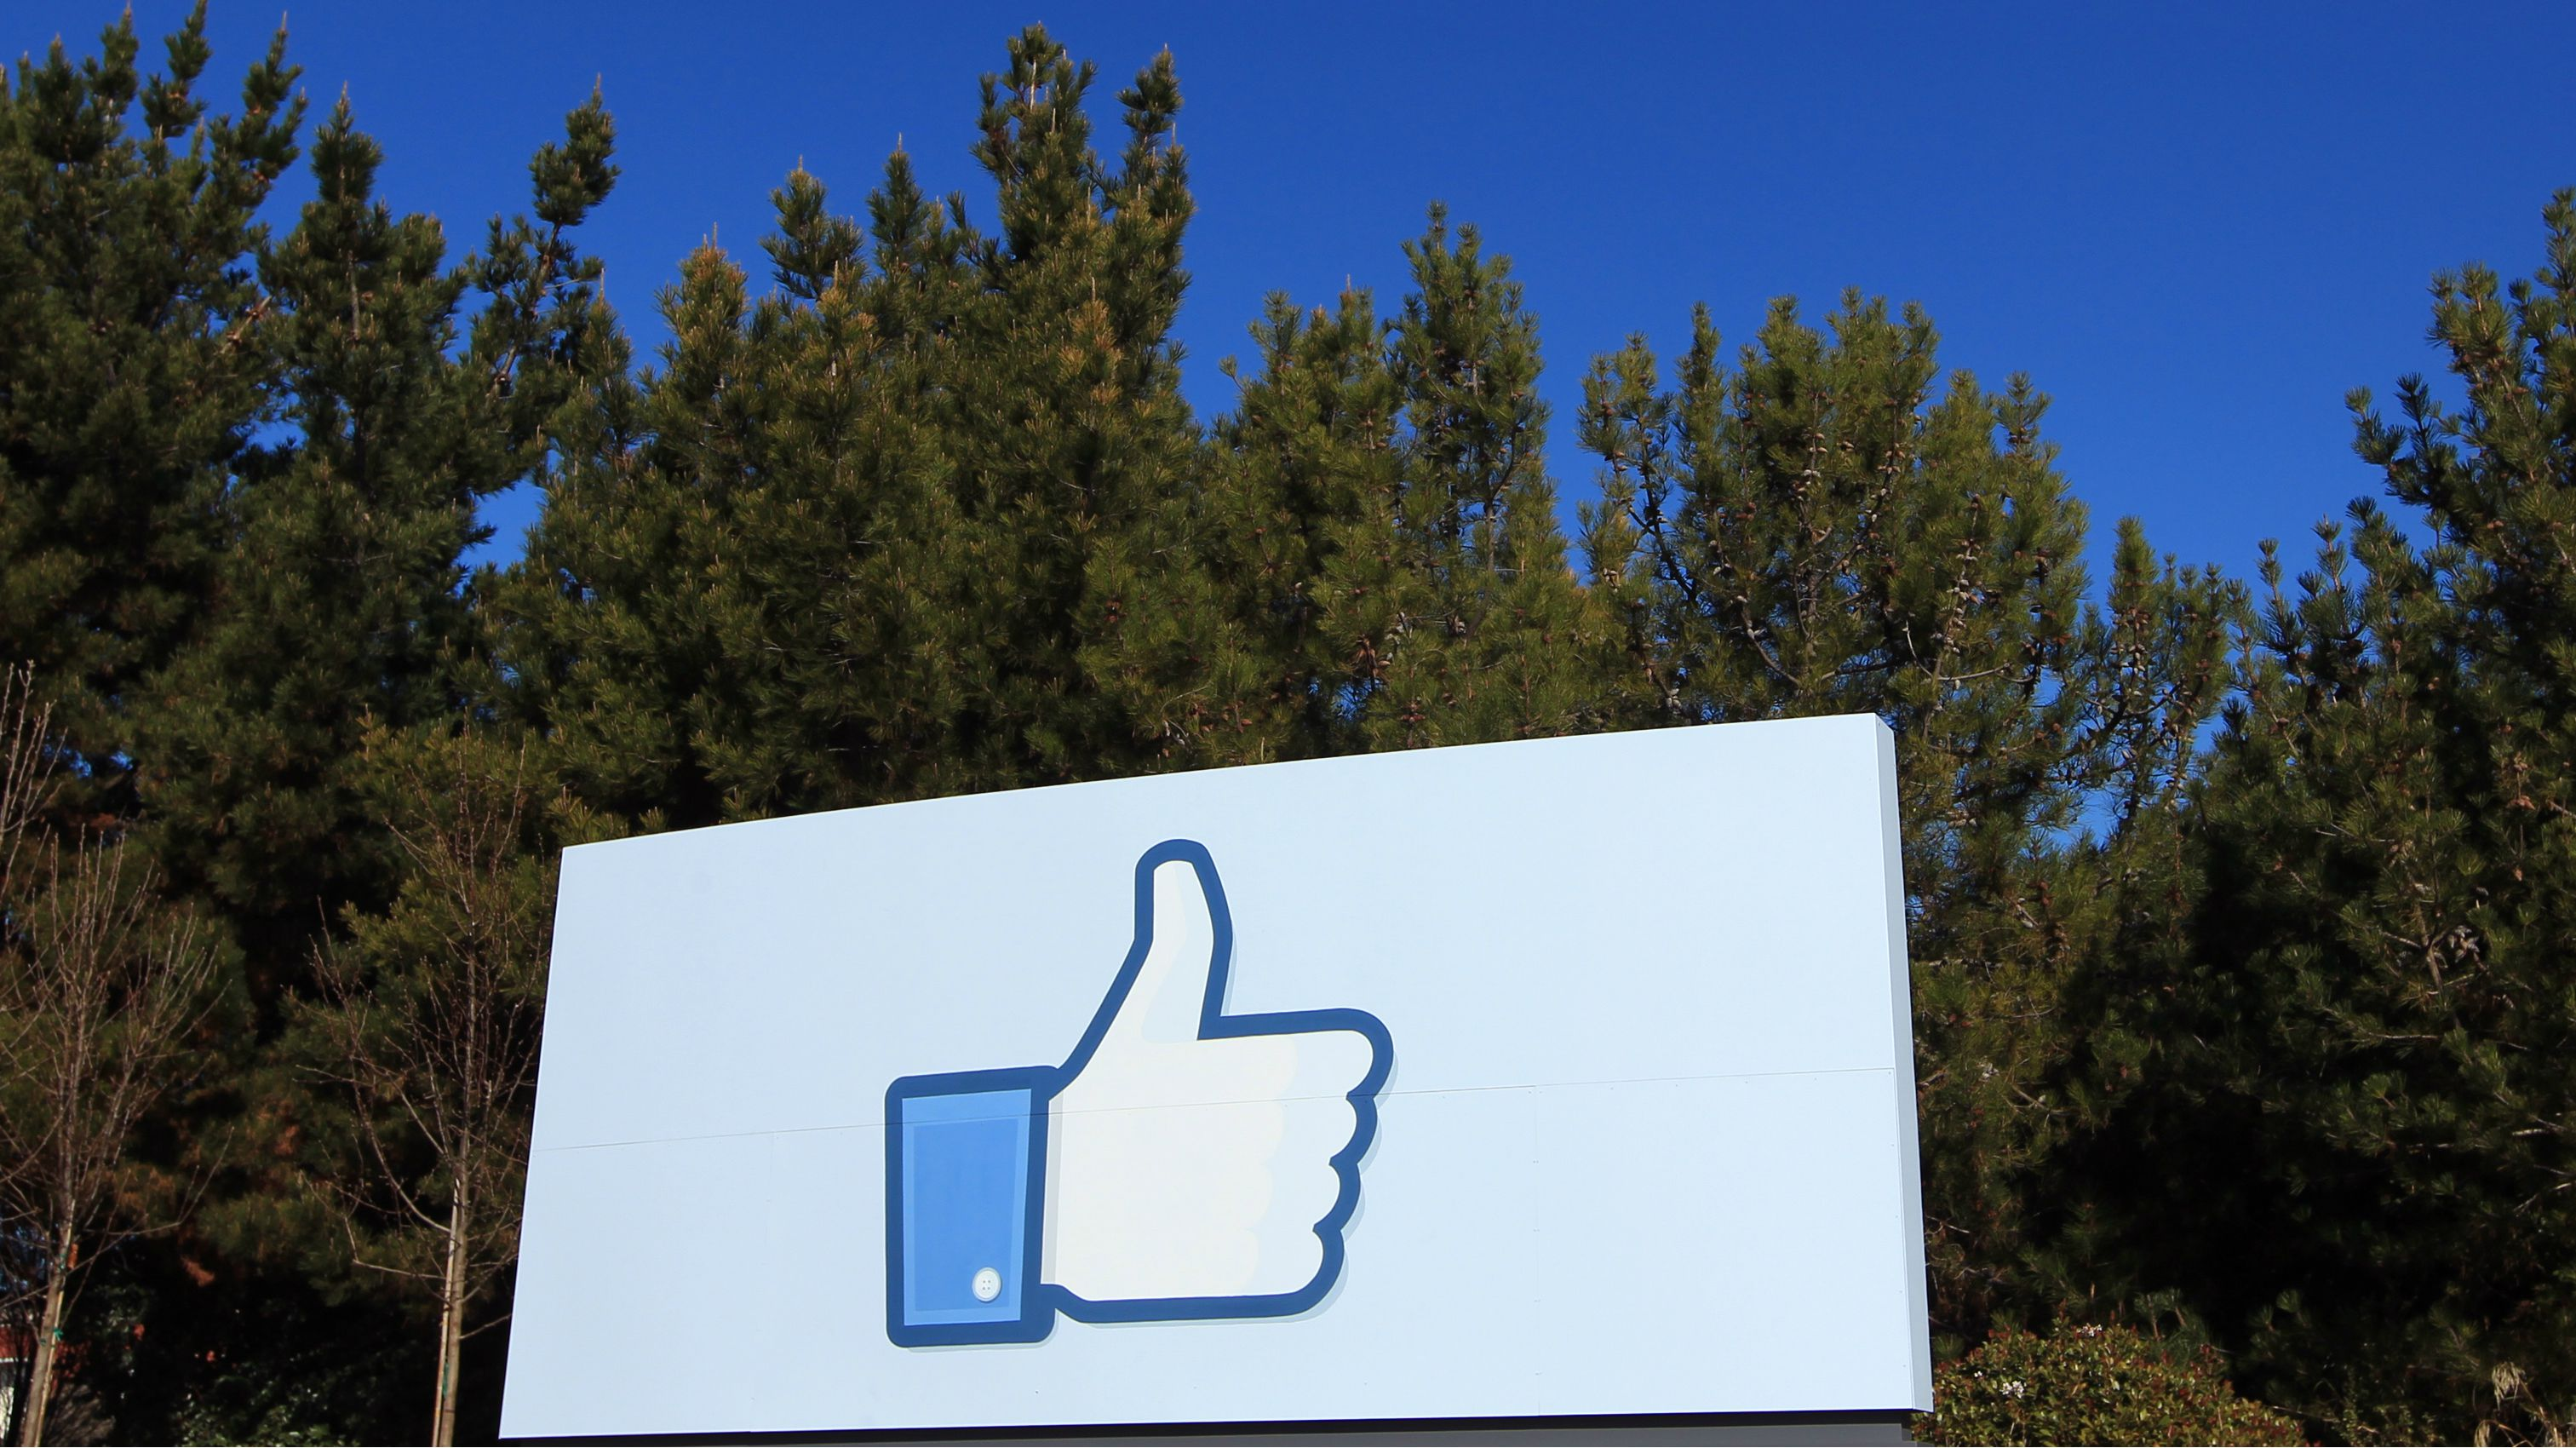 """A giant """"like"""" icon made popular by Facebook is seen at the company's new headquarters in Menlo Park, California January 11, 2012. The 57-acre campus, which formerly housed Sun Microsystems, features open work spaces for nearly 2,000 employees on the one million square foot campus, with room for expansion. Picture taken January 11, 2012. REUTERS/Robert Galbraith"""